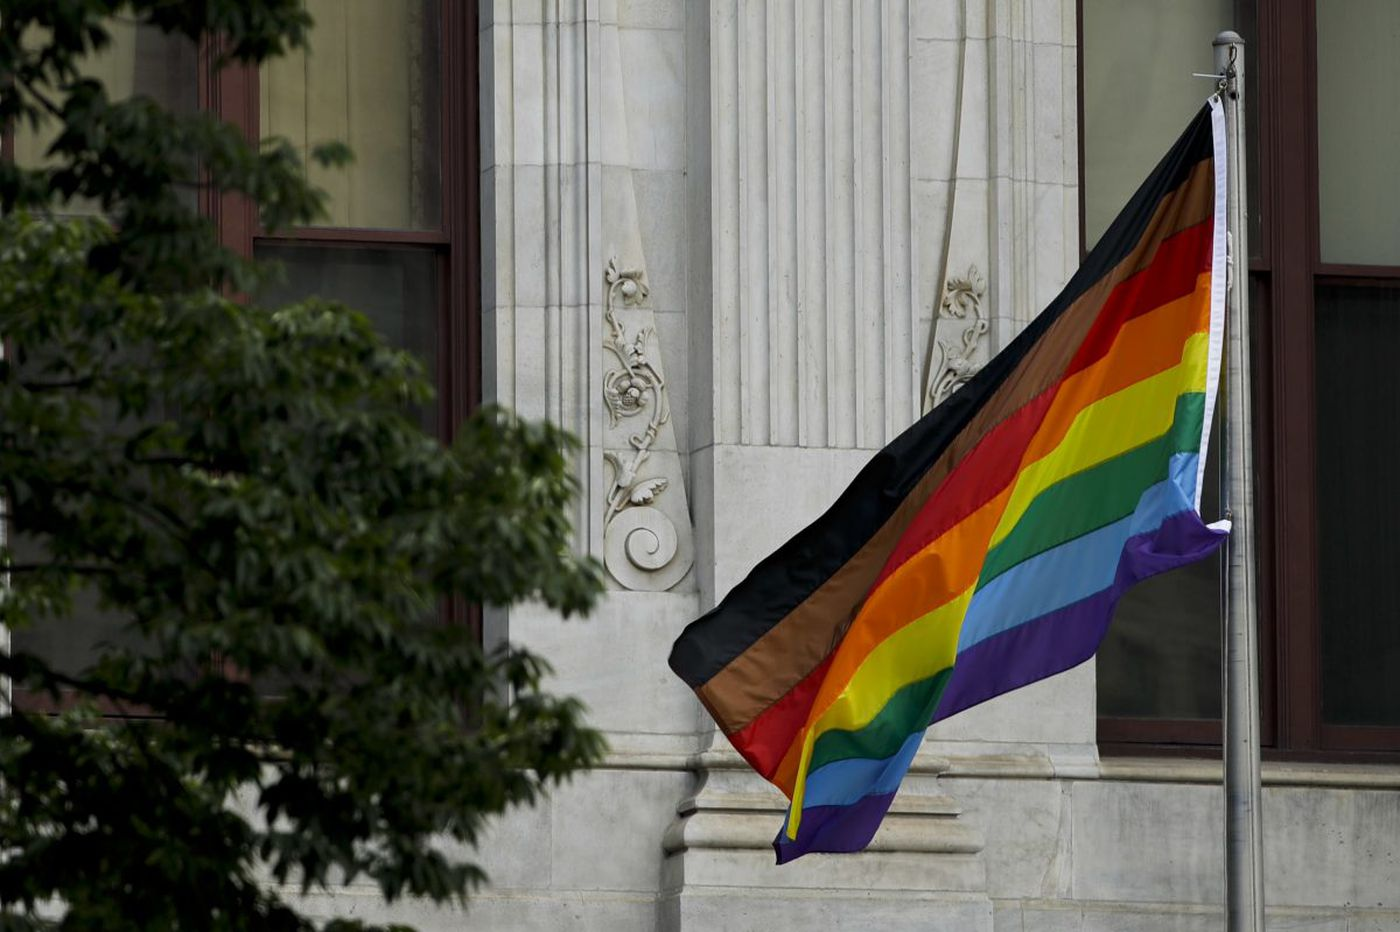 At LGBTQ Mazzoni health center, a bitter battle over union recognition